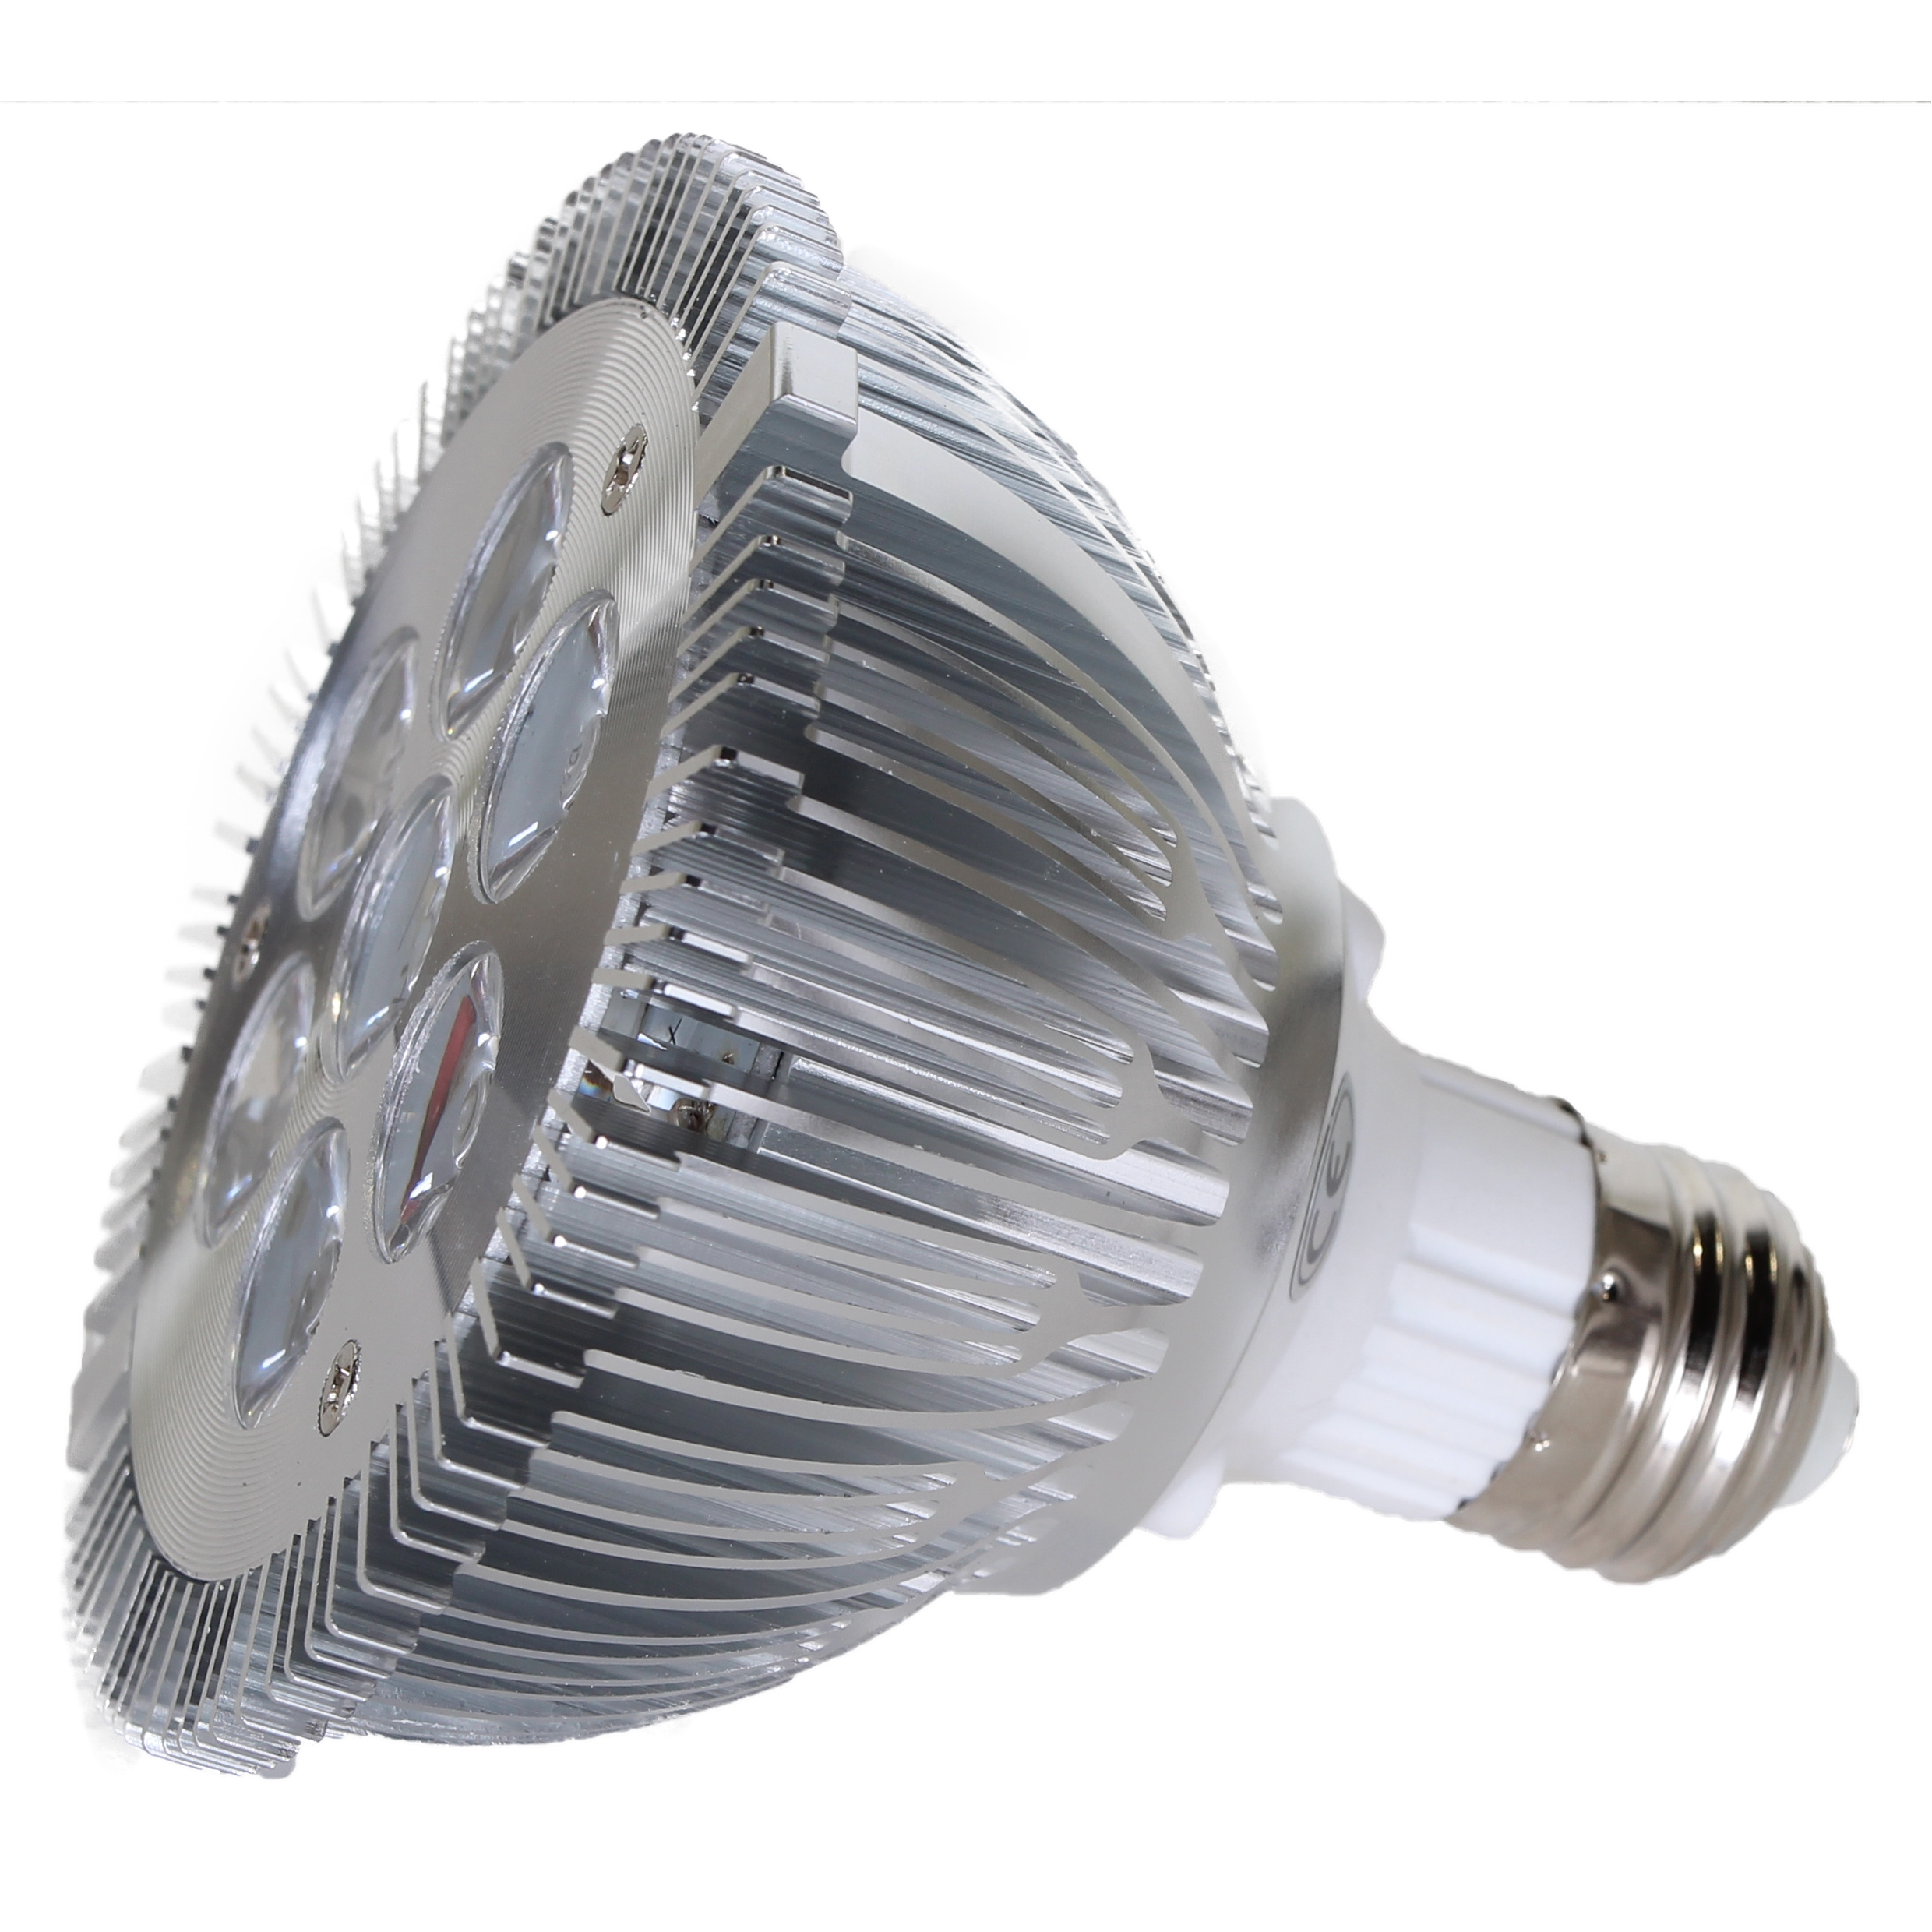 14W LED PAR30 Light Bulb 2700K Warm White Wide Flood LED BULBS, LED BUBLS, LED PAR, CREE CHIP, LUMEN,  LED, LED Light bulbs, Lamp, Light Bulb, Extra Long Life, White Light, Super Bright, DLWP301427